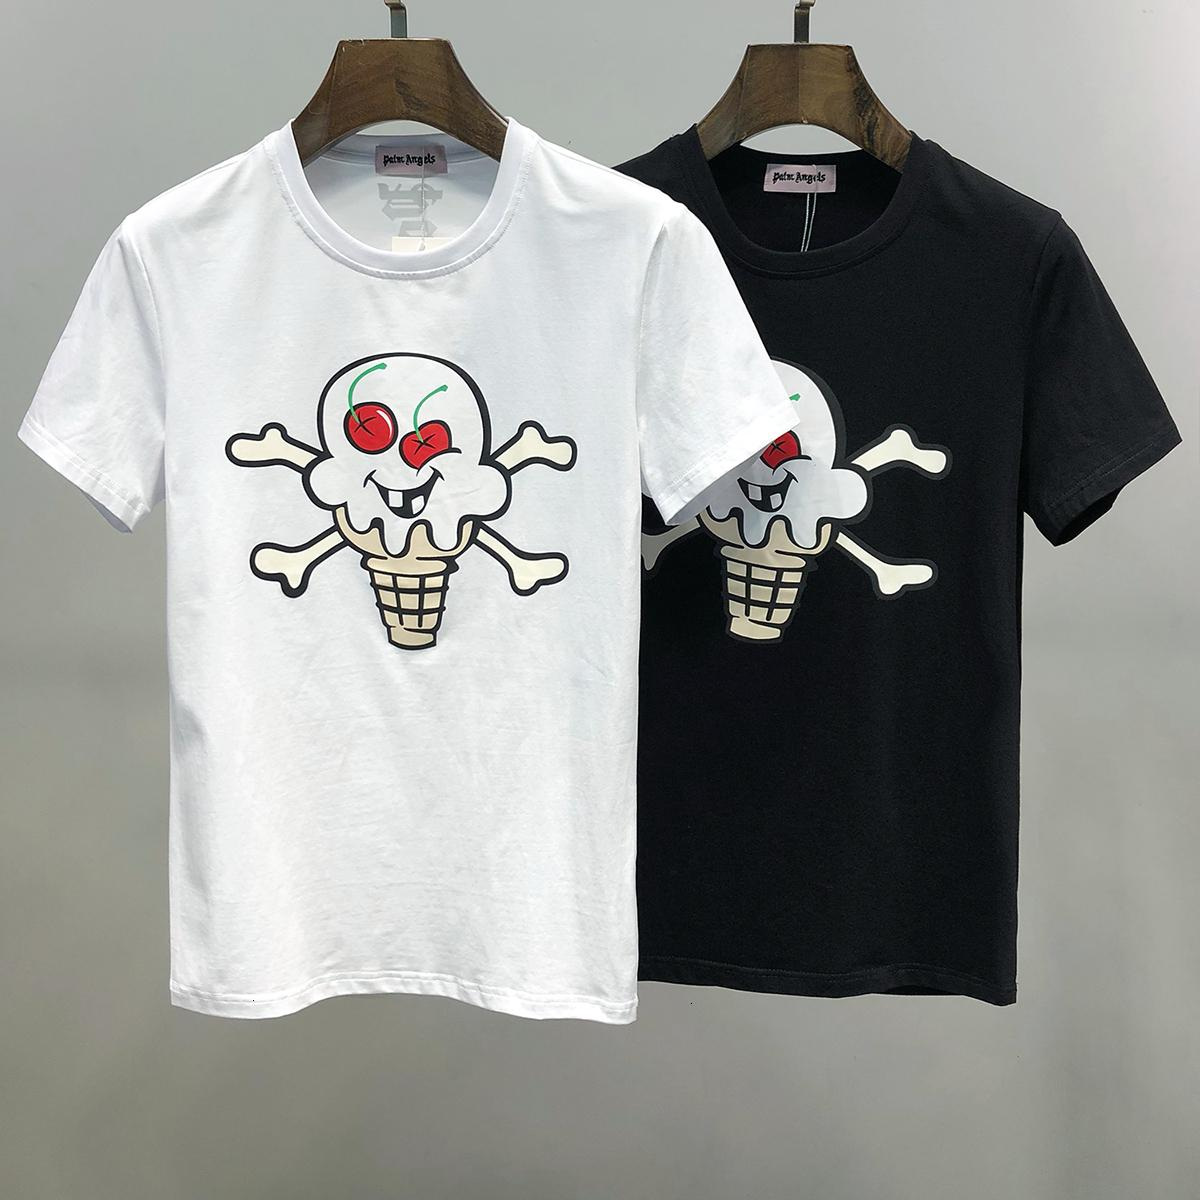 2020 Summer Fashion New Modle Man Short Sleeve T-shirt For Men Korean Version Slim Men's Wear Clothes 11284